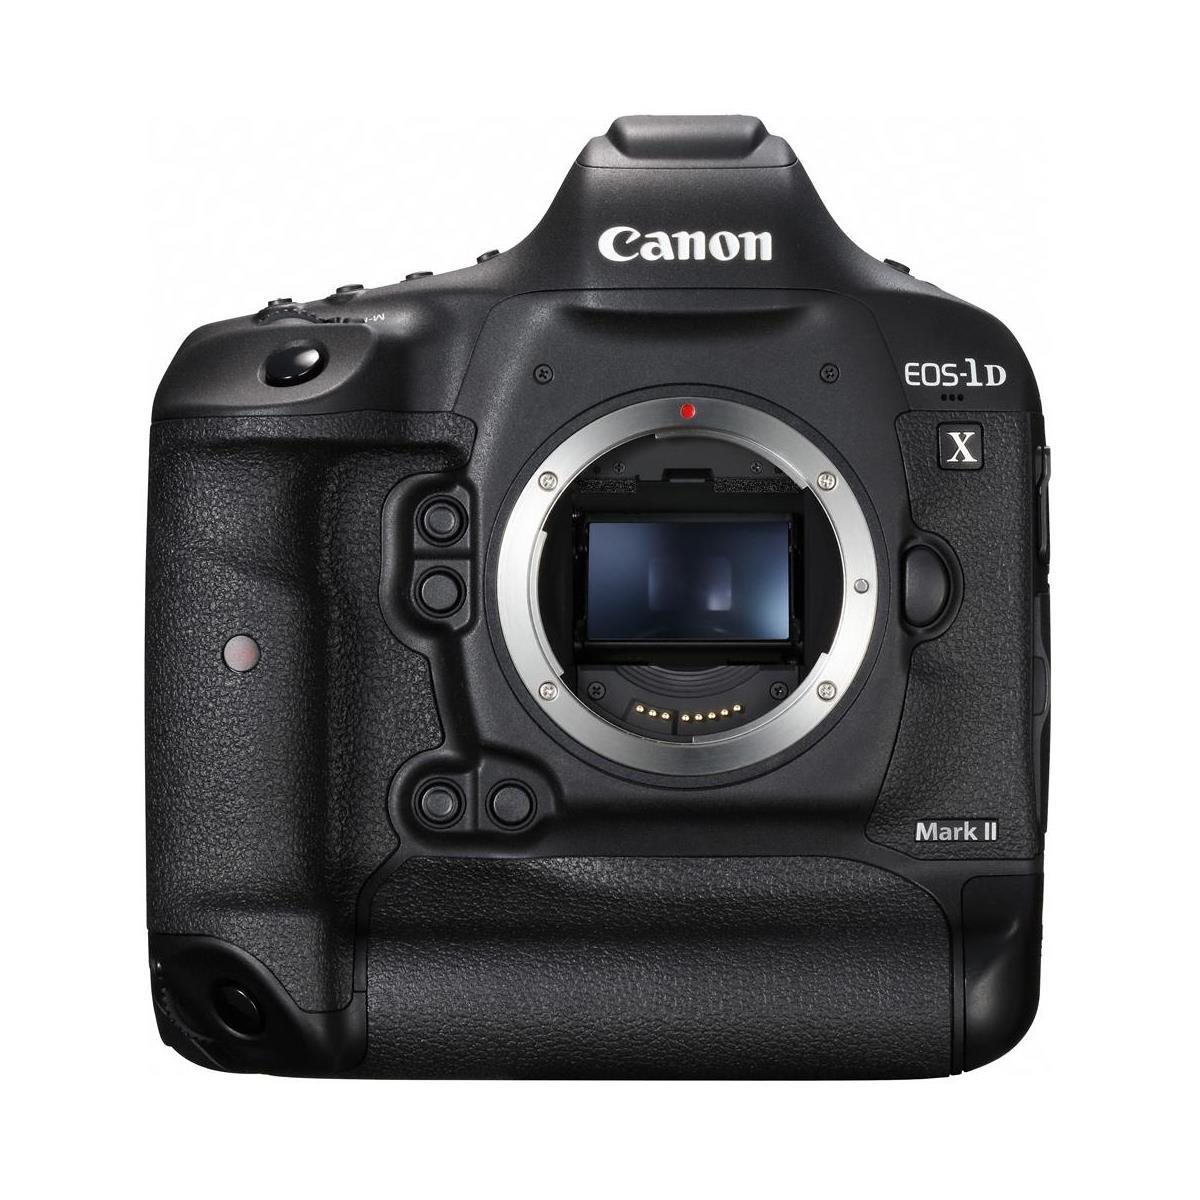 Camera The Most Expensive Dslr Camera 4 most expensive dslr cameras in 2016 alc made with the professional action or sports photographer mind this full frame has a maximum of 14fps standard16fps live view burst rate and a